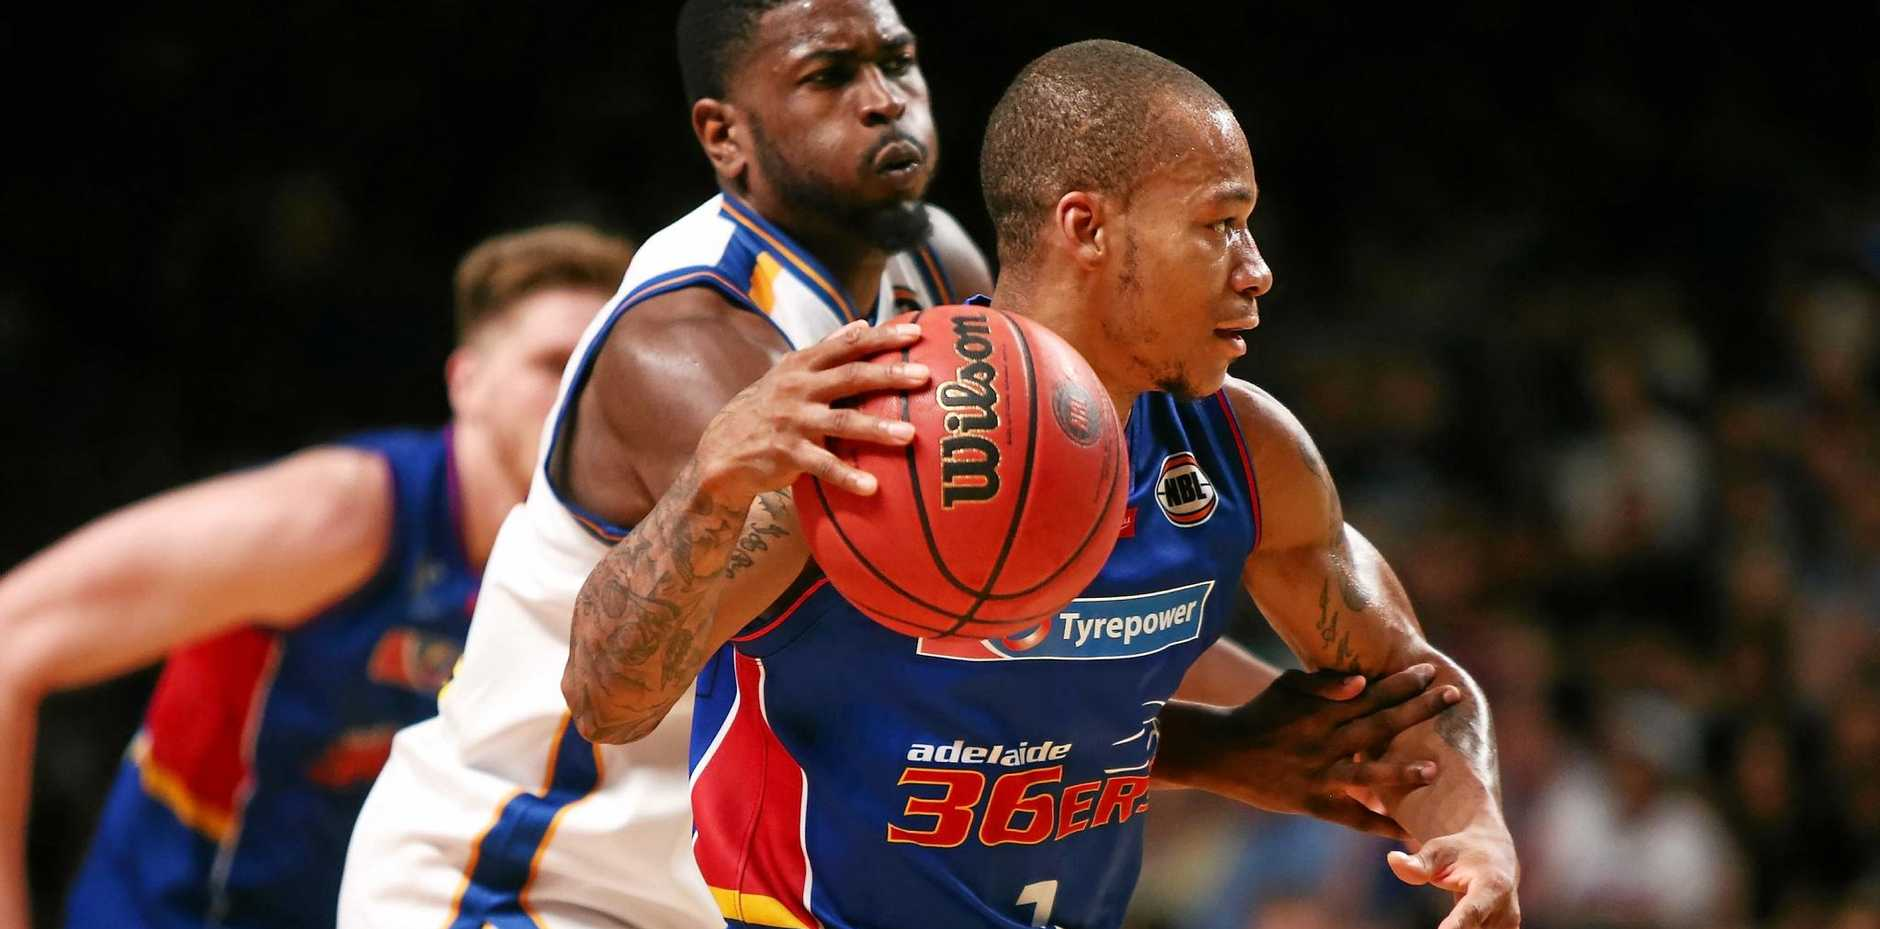 Jerome Randle of the Adelaide 36ers gets away from Jermaine Beal of the Brisbane Bullets